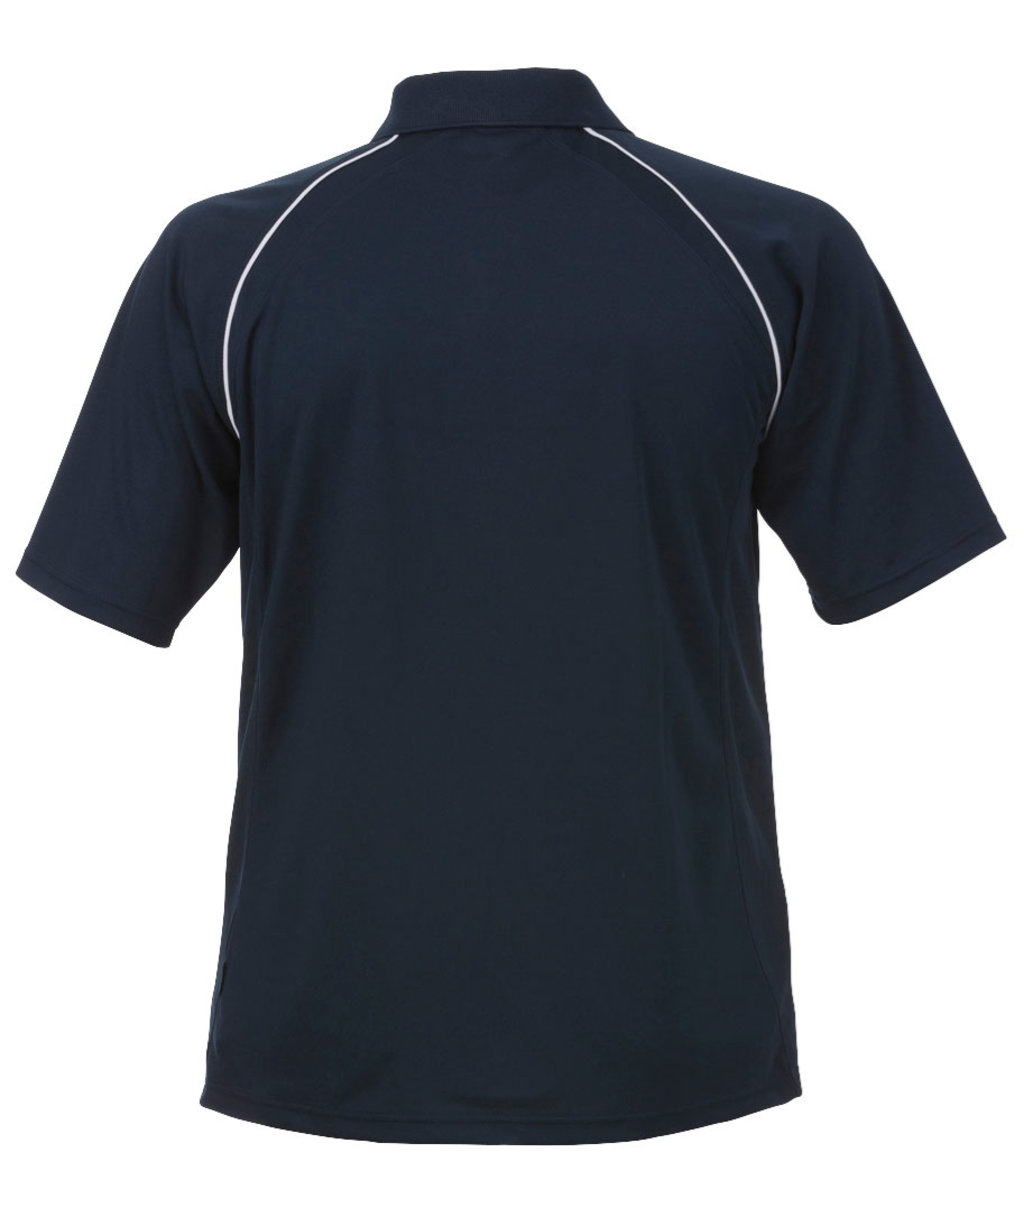 Acode Coolpass Sporty Polo T shirt, Mørk Marine